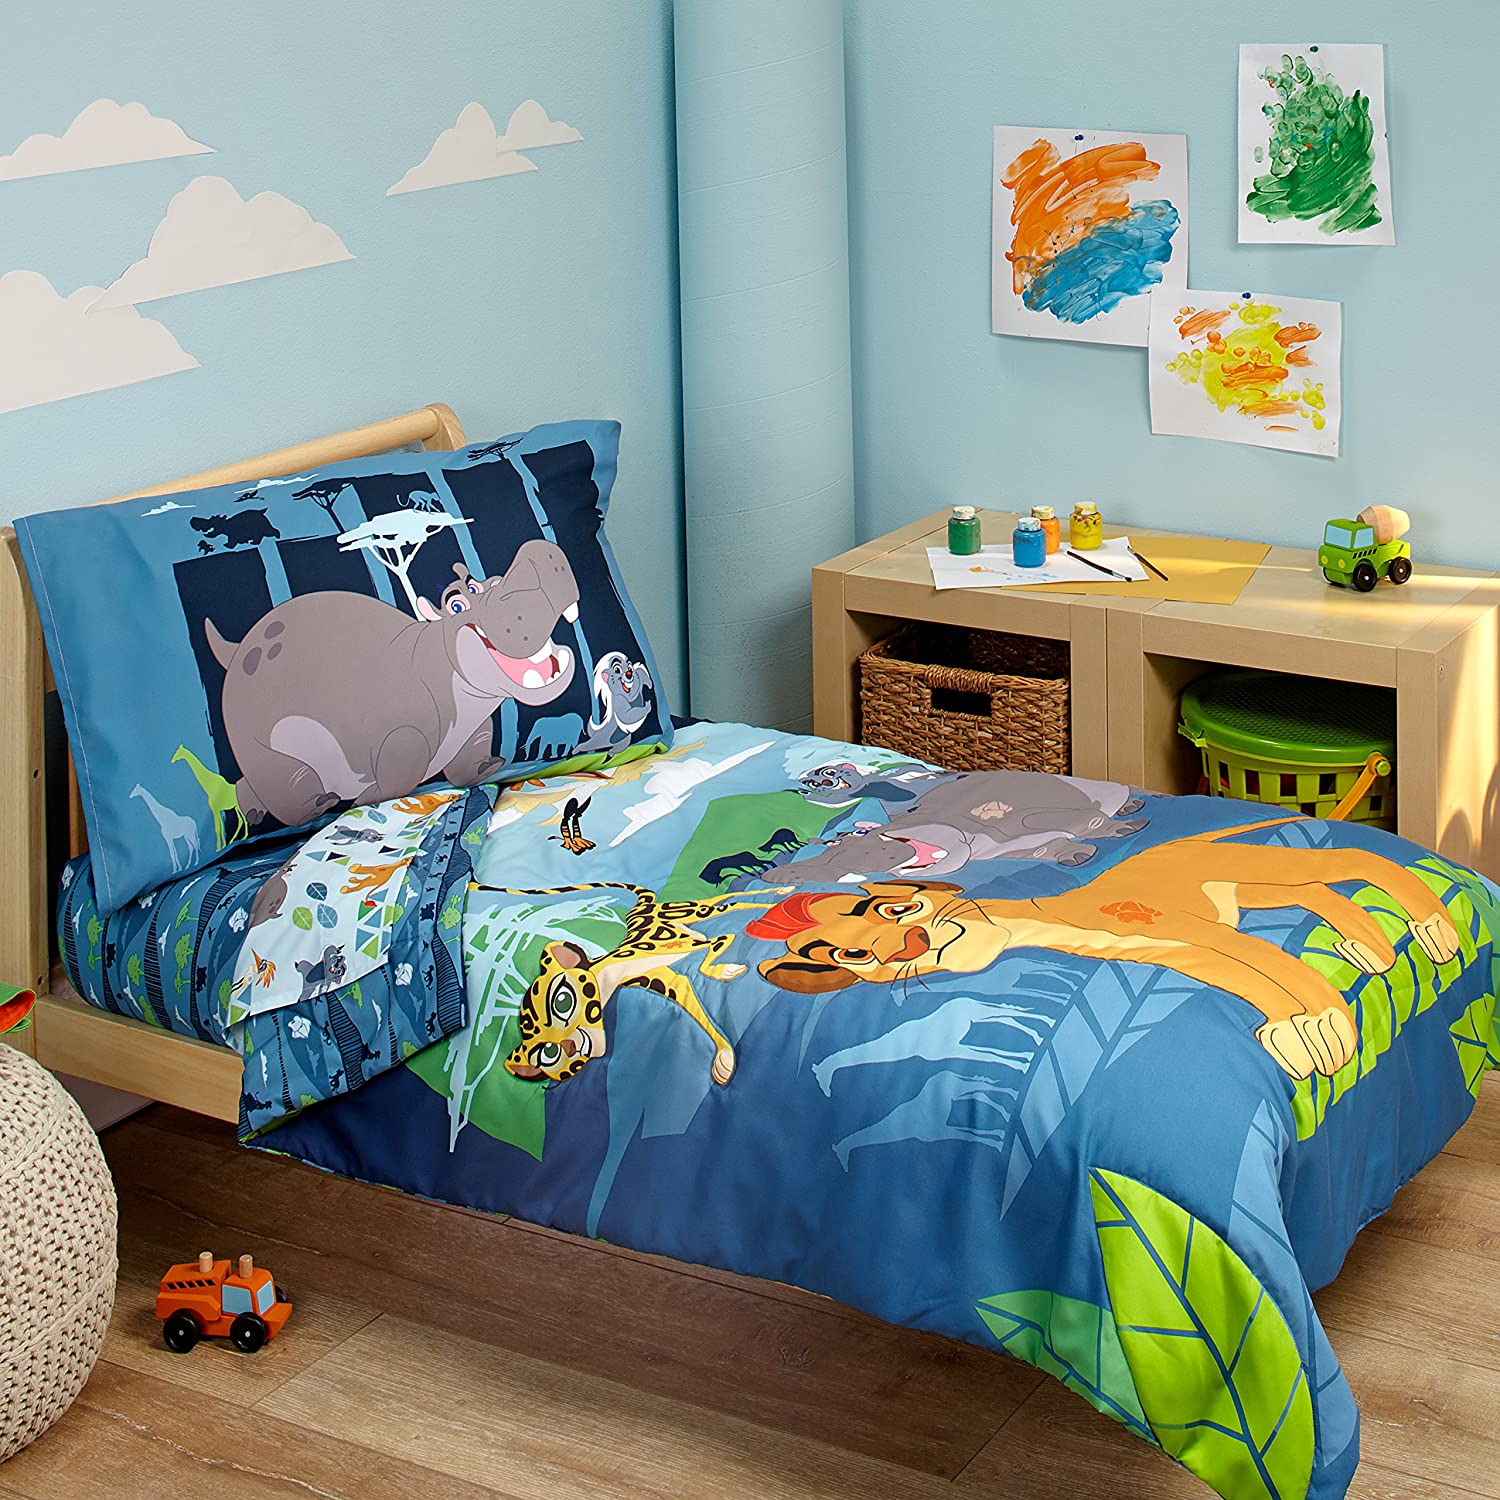 Amazon Disney Jake And The Neverland Pirates 4 Piece Toddler Bedding Set Baby